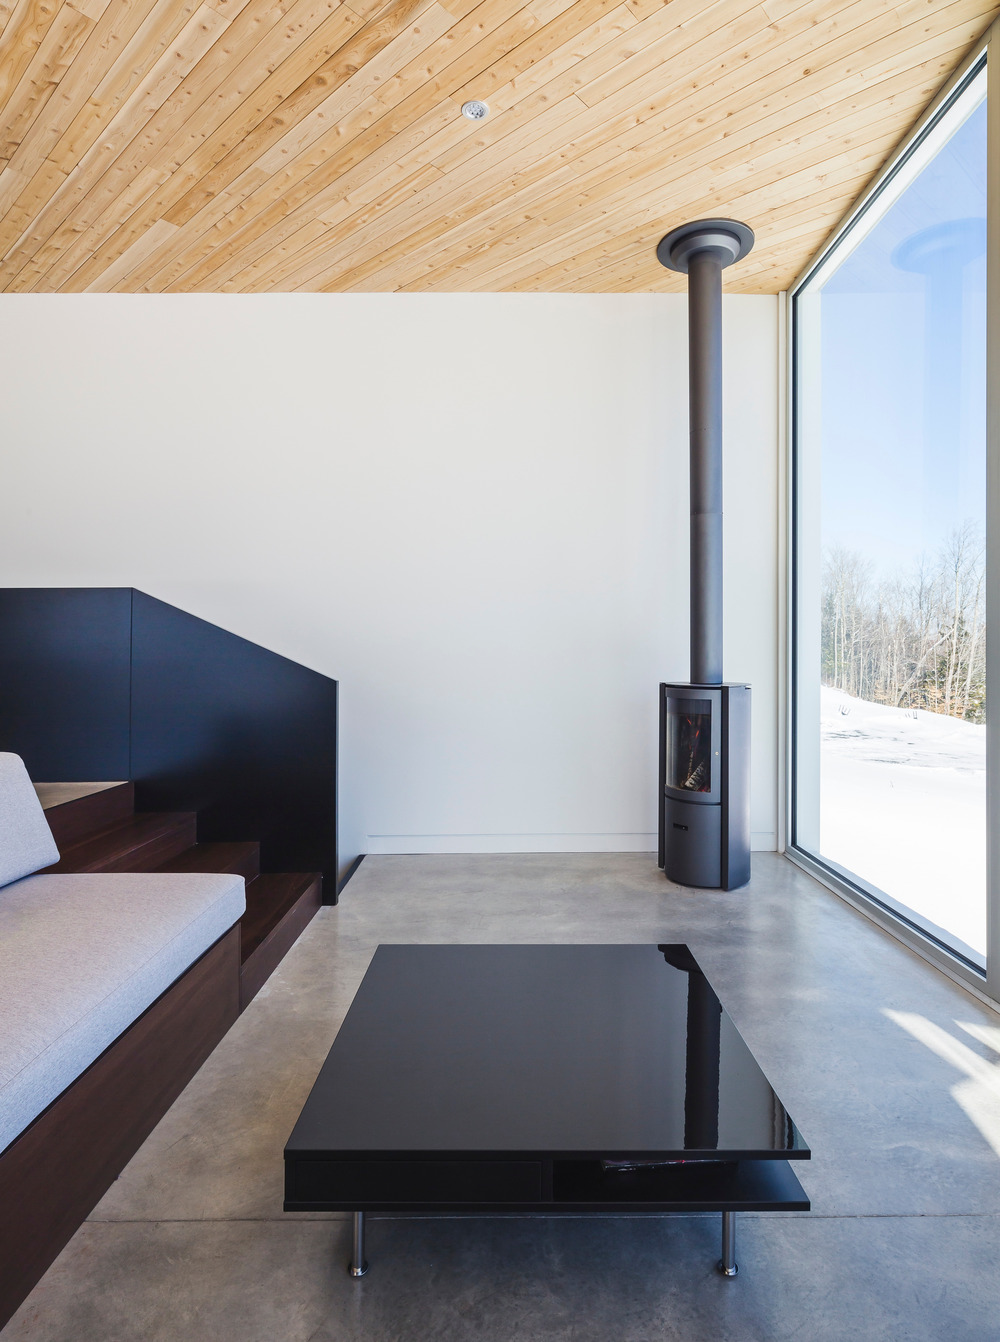 The surfaces are sleek and simple, nothing here distracts attention from the views